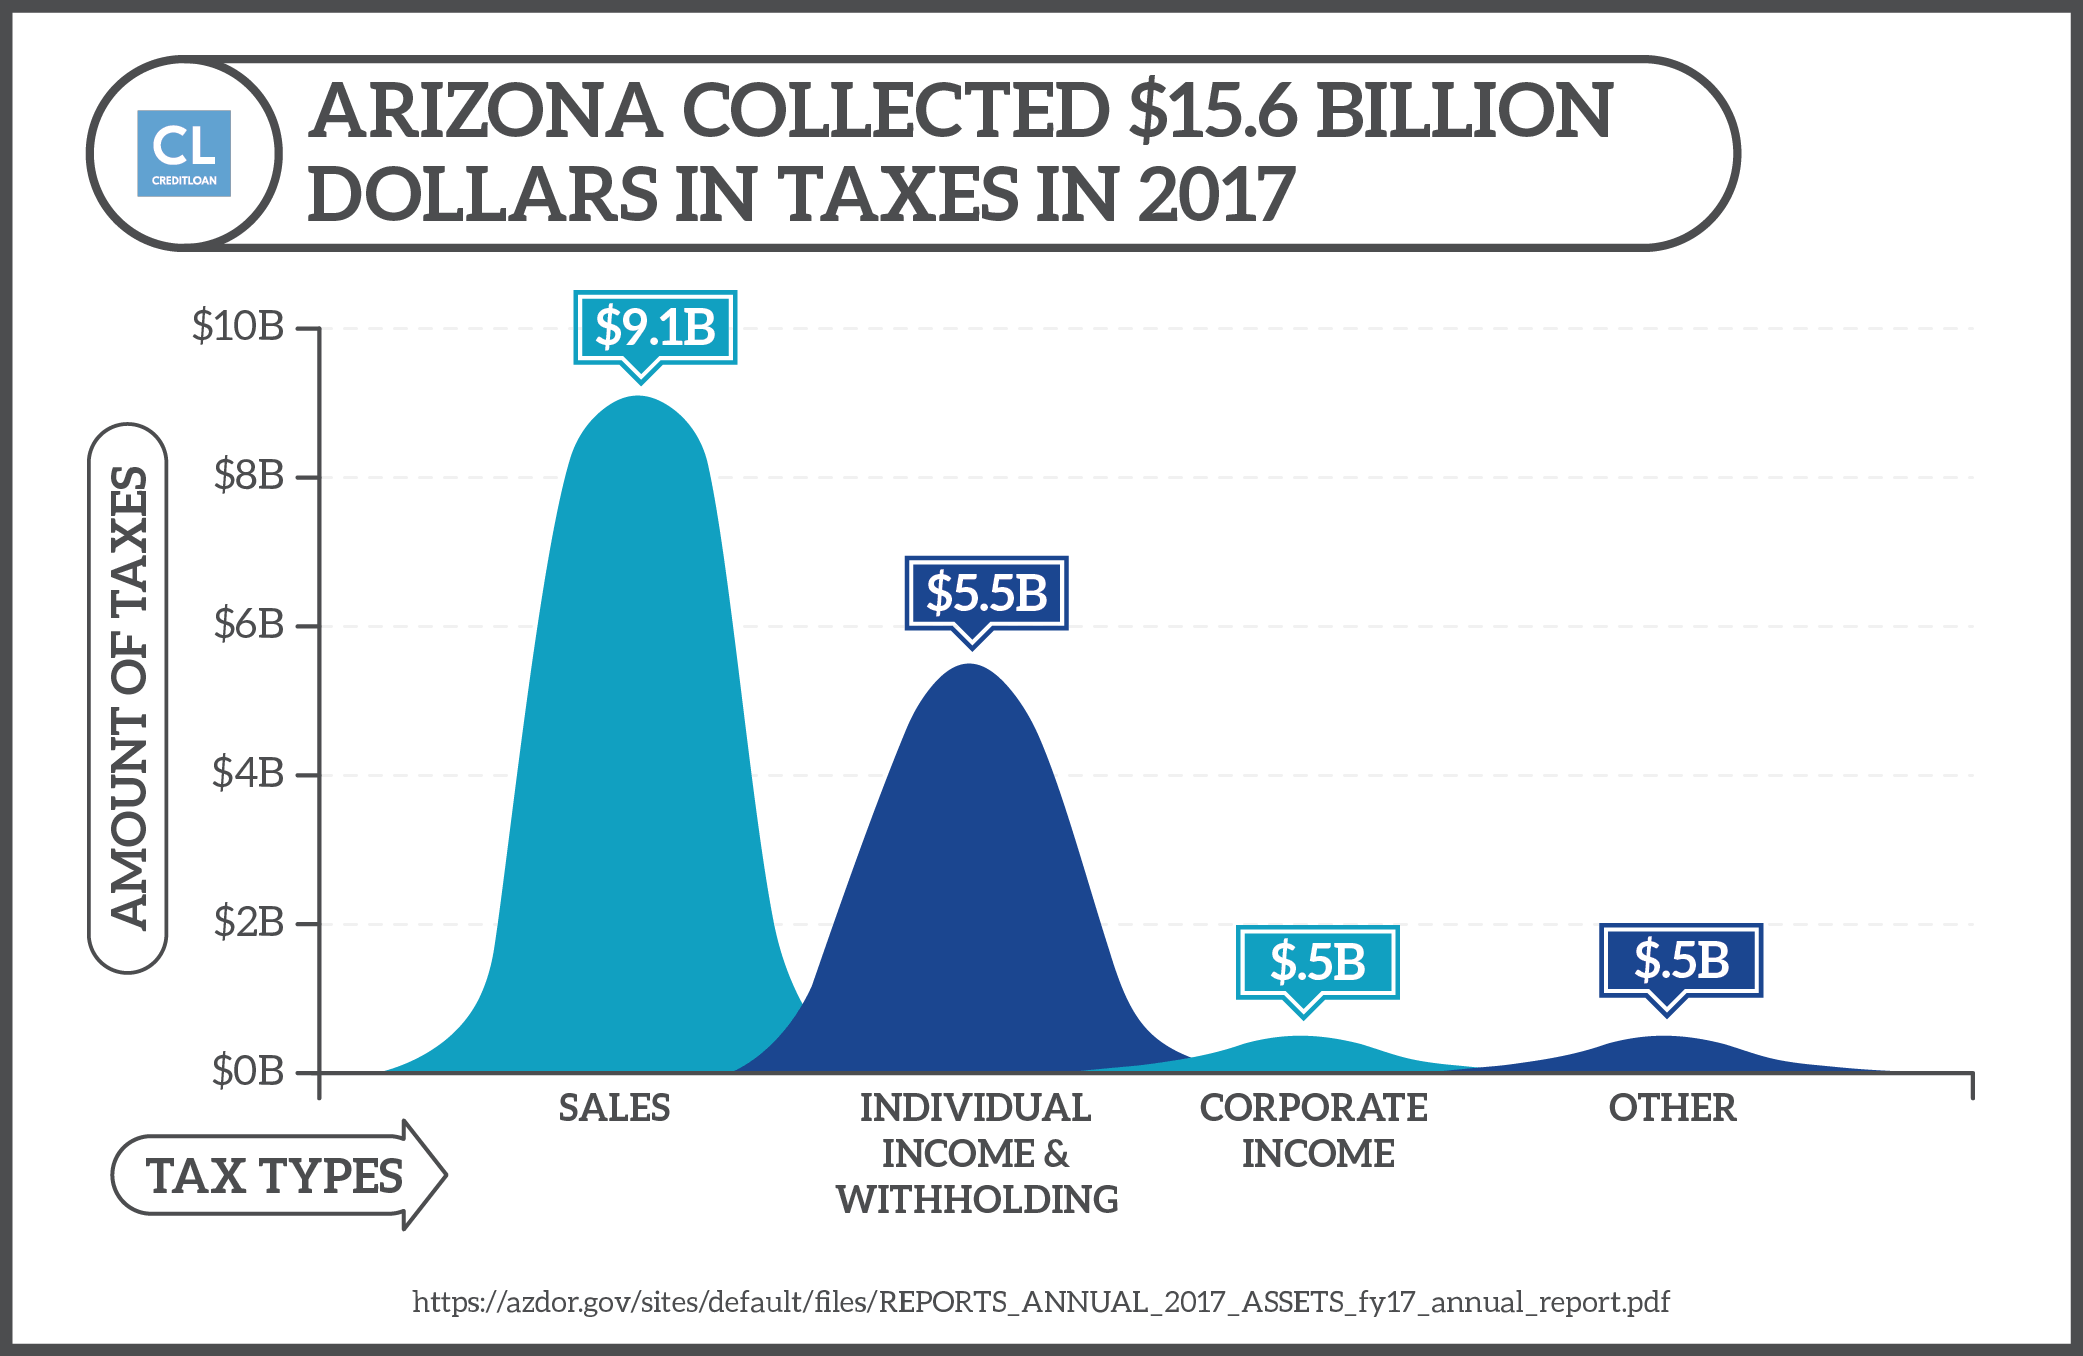 Arizona Tax Dollars Collected by Source